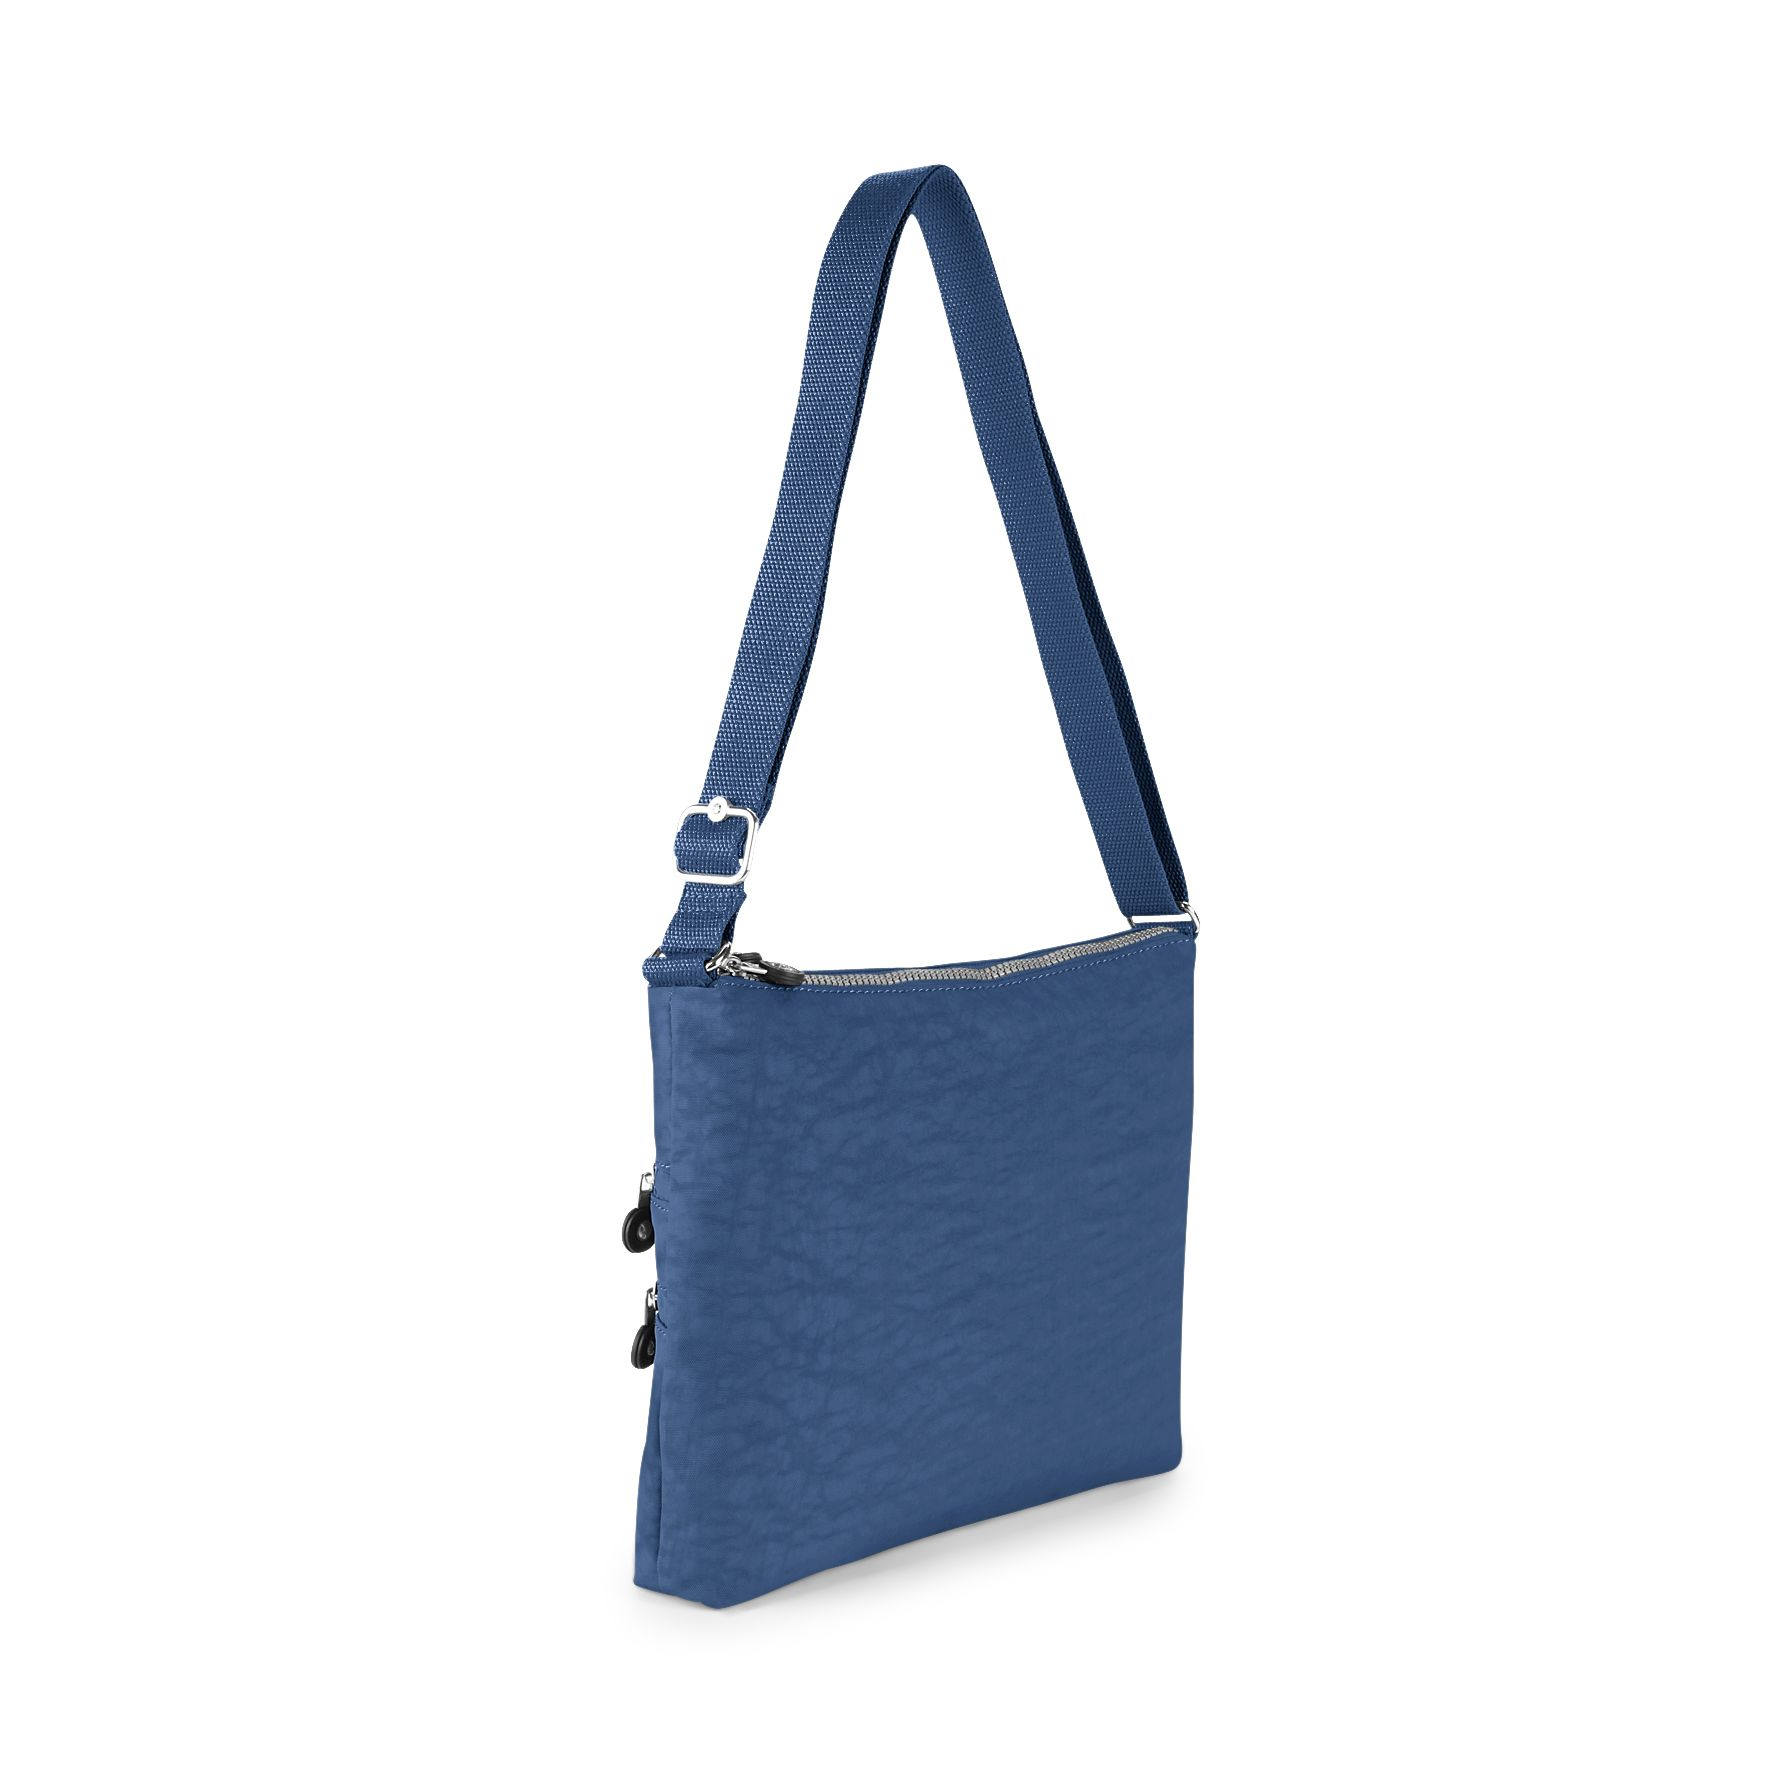 Alvar shoulder bag